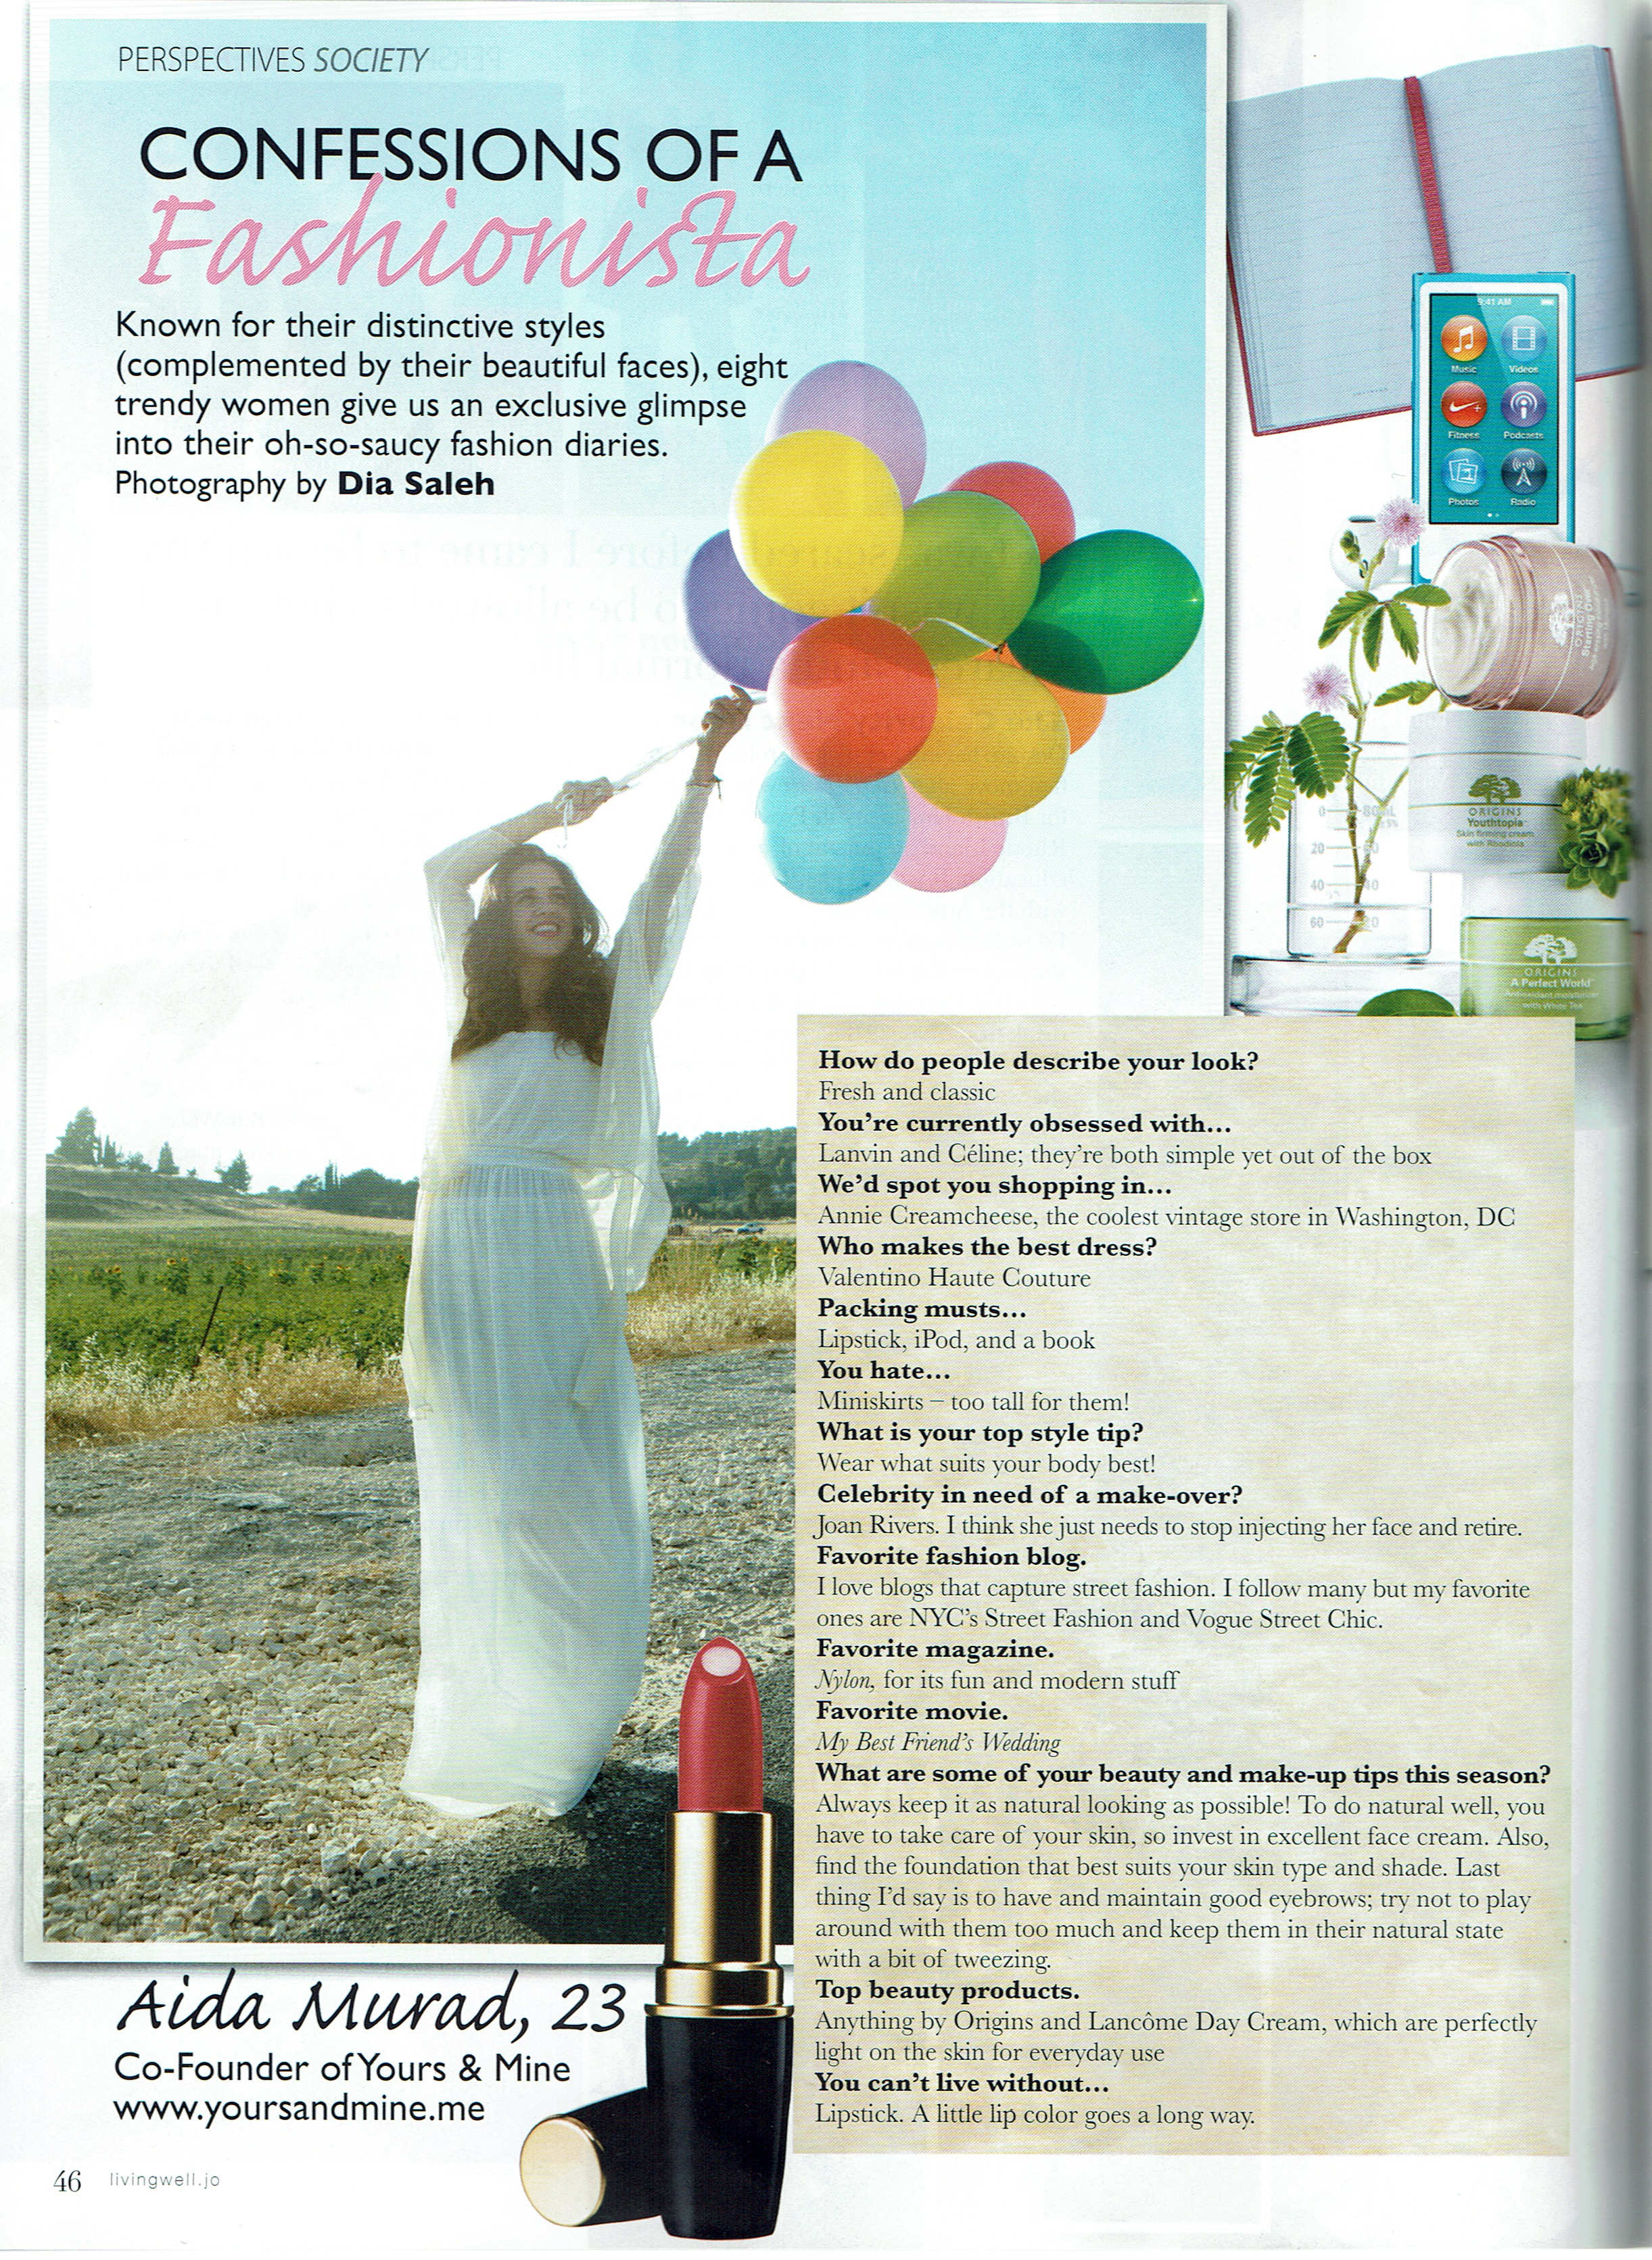 Featured in Living Well magazine in Jordan about my approach to fashion.